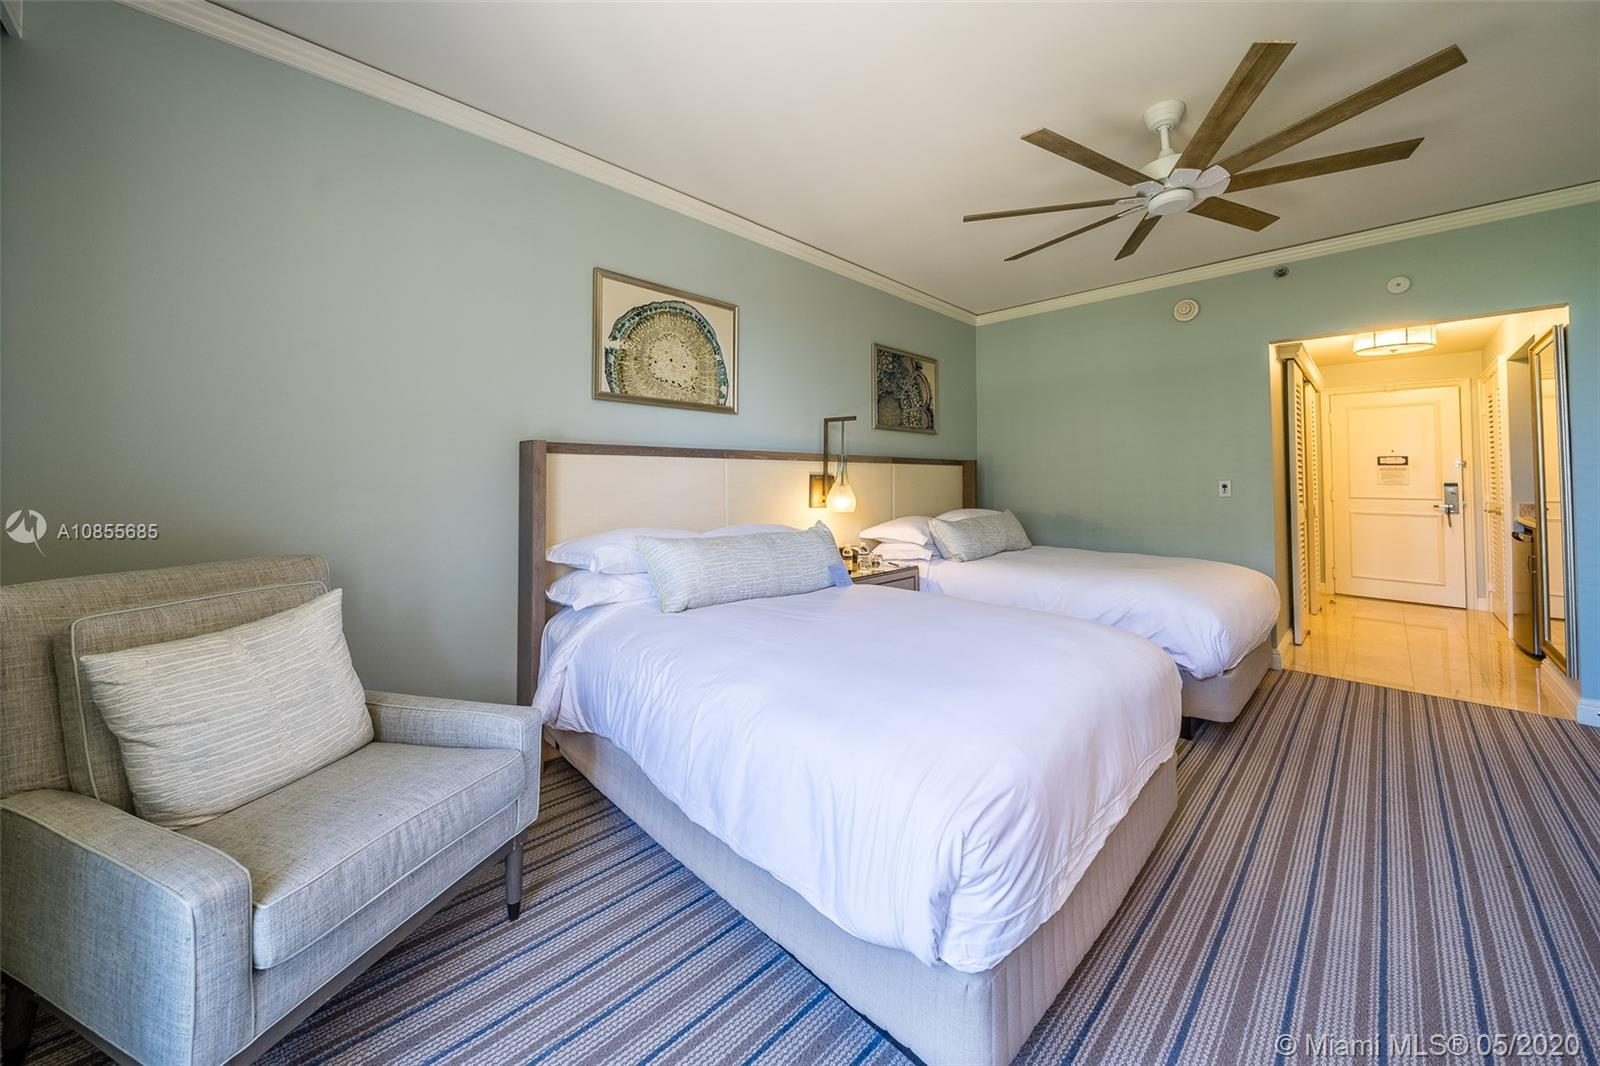 Take advantage of this great opportunity to rent an OCEAN VIEW STUDIO AT THE RITZ-CARLTON HOTEL in Key Biscayne. This unit has been renovated and is fully furnished as a hotel room. Enjoy your vacation in this luxurious condo hotel residence while having access to all of the hotel amenities.